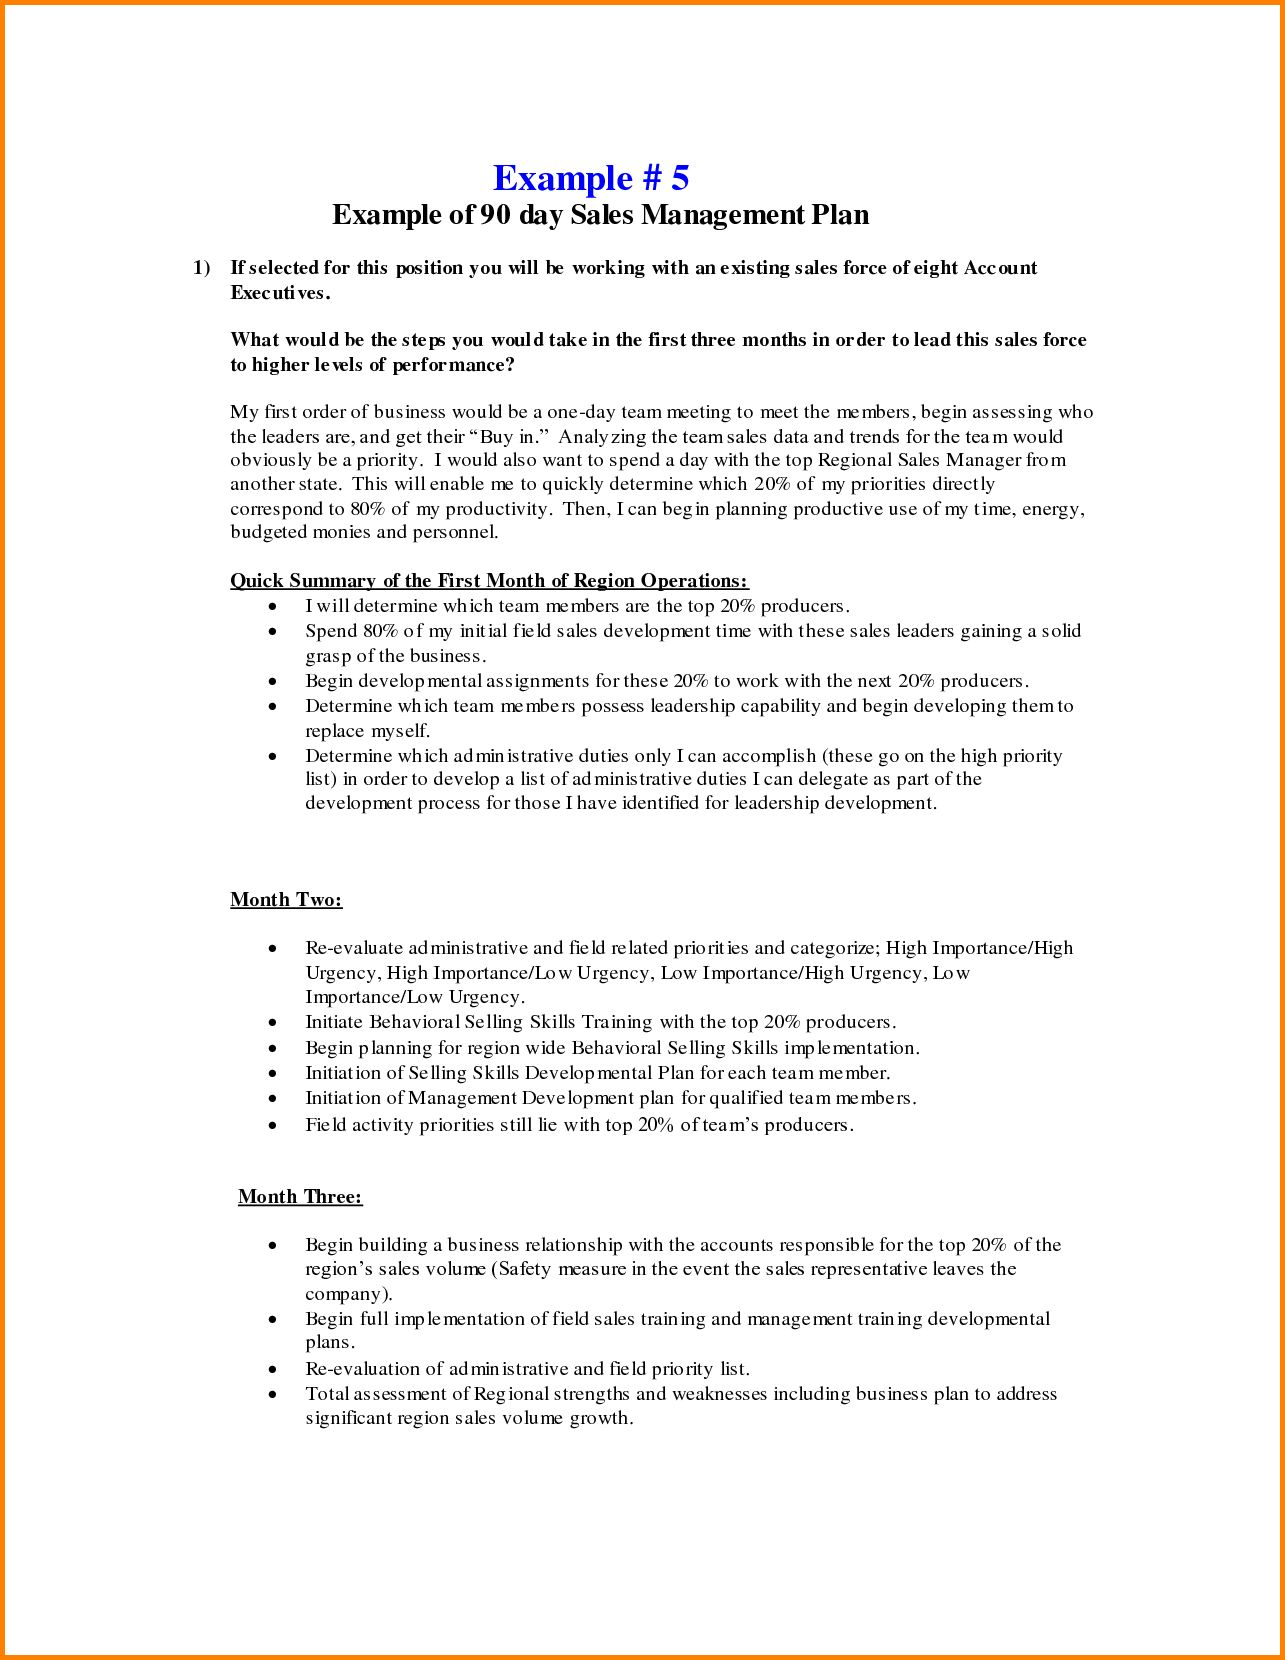 Business Plans Day Sales Management Plan Template Free For